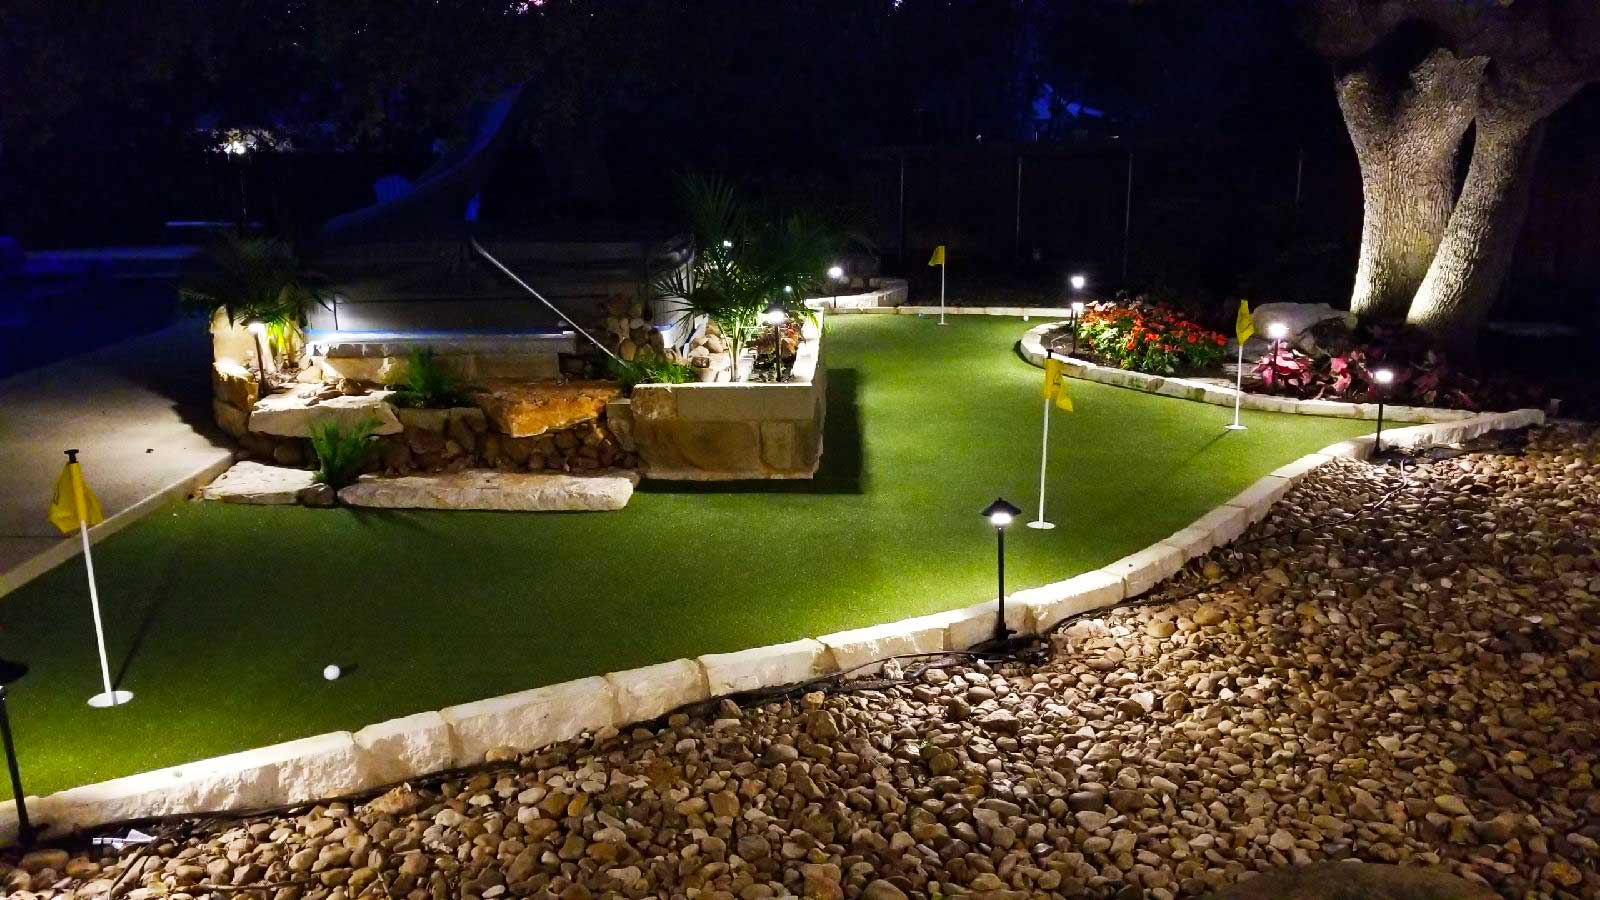 Synlawn artificial turf Precision Putt putting green at night in Austin Texas installed by Speir Grass